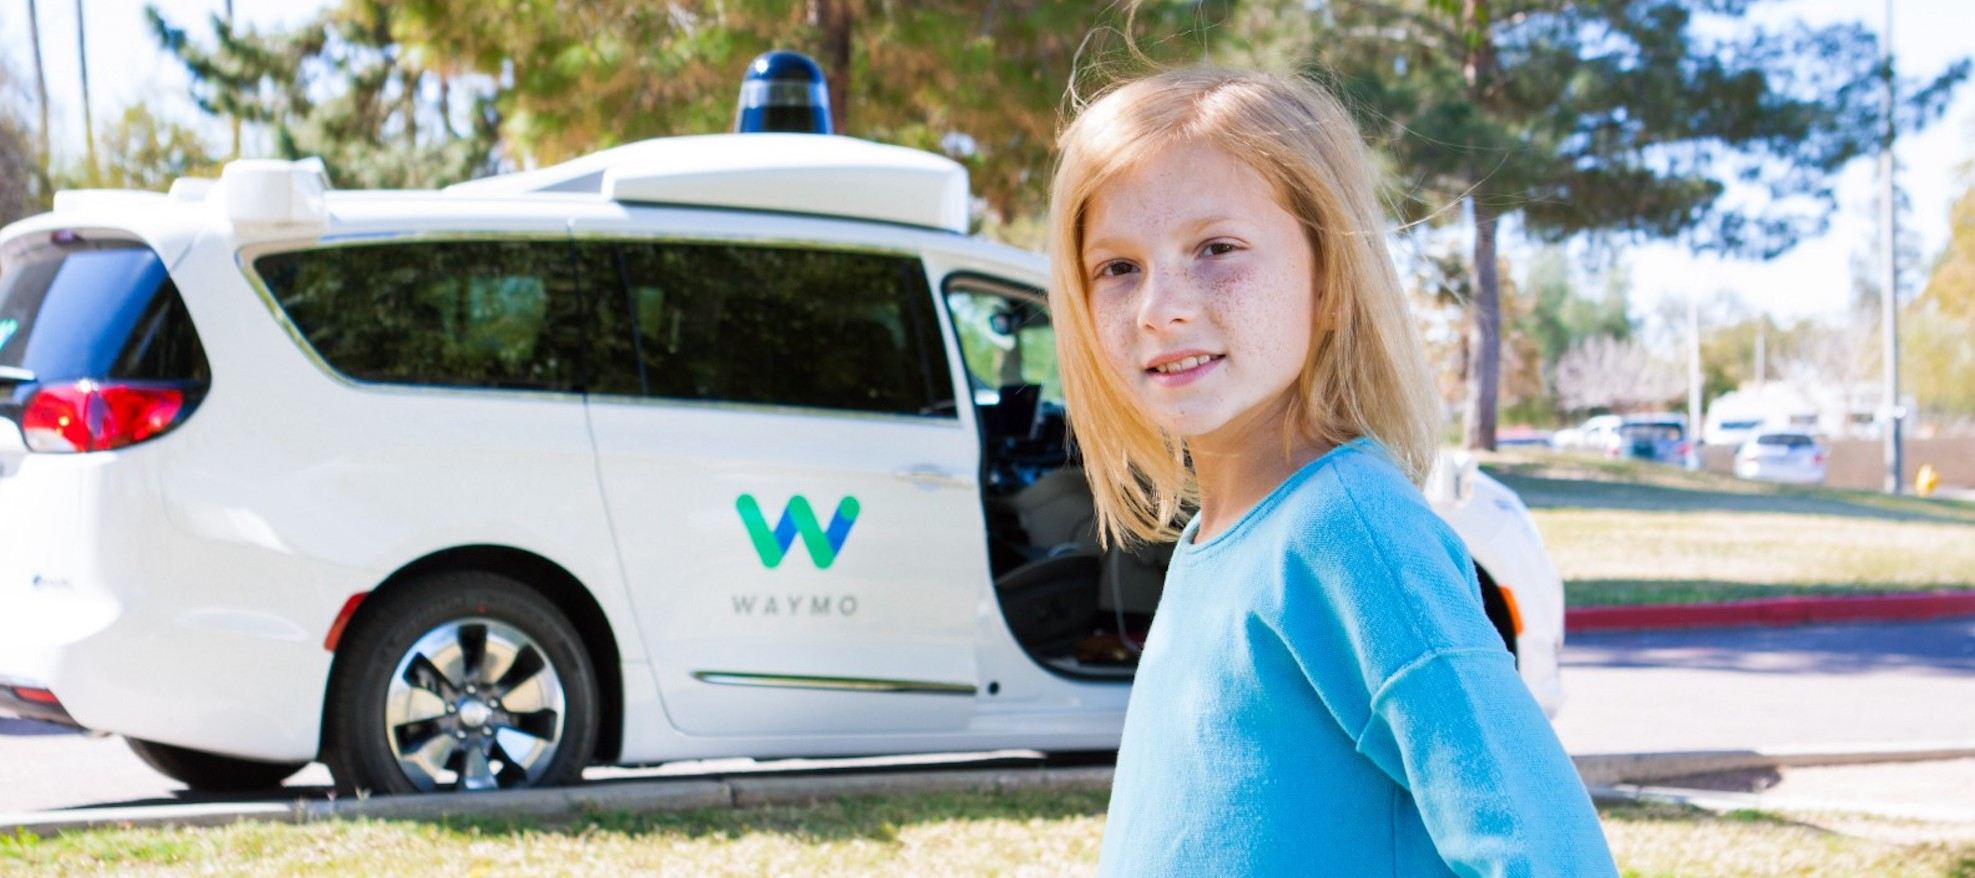 Phoenix real estate pros welcome Google's Waymo driverless cars